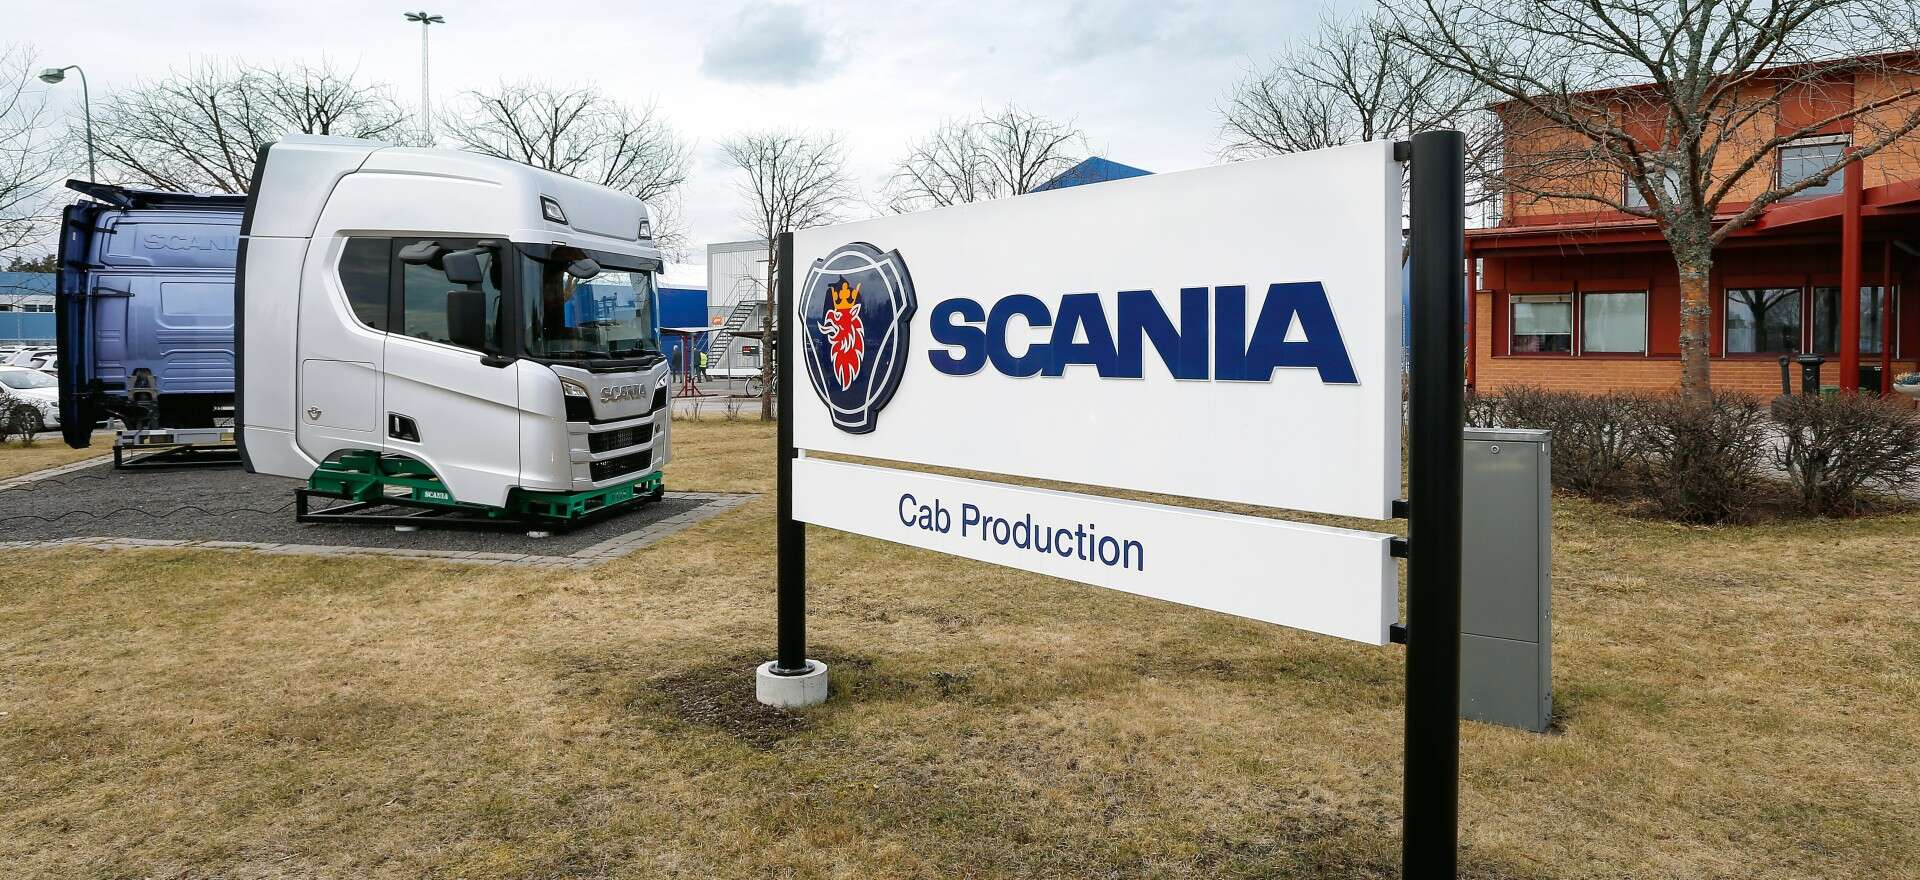 Scania truck cabs